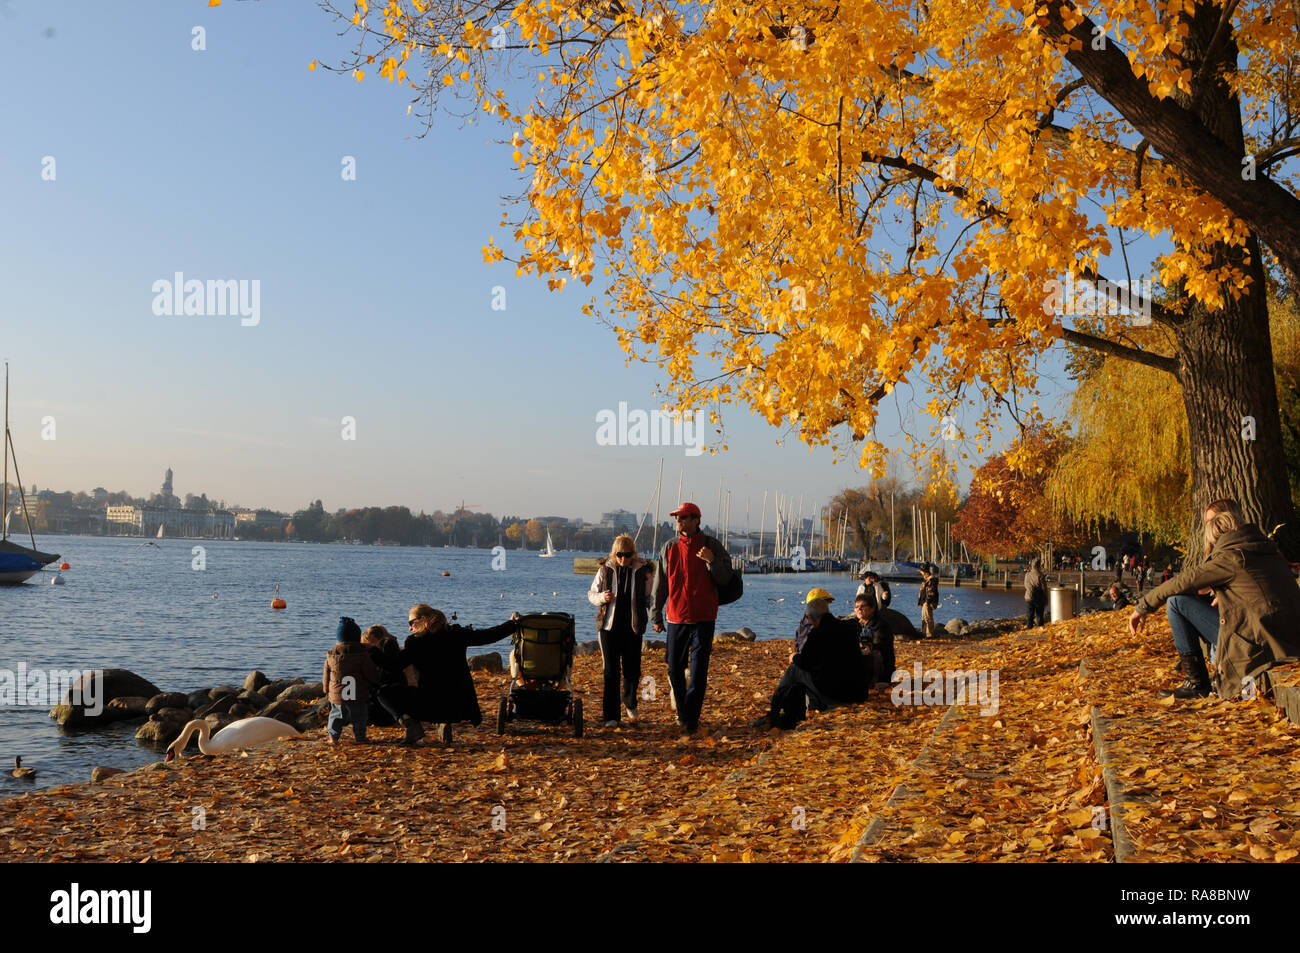 Switzerland: people enjoying autumn colors at Lake Zürich in Seefeld - Stock Image